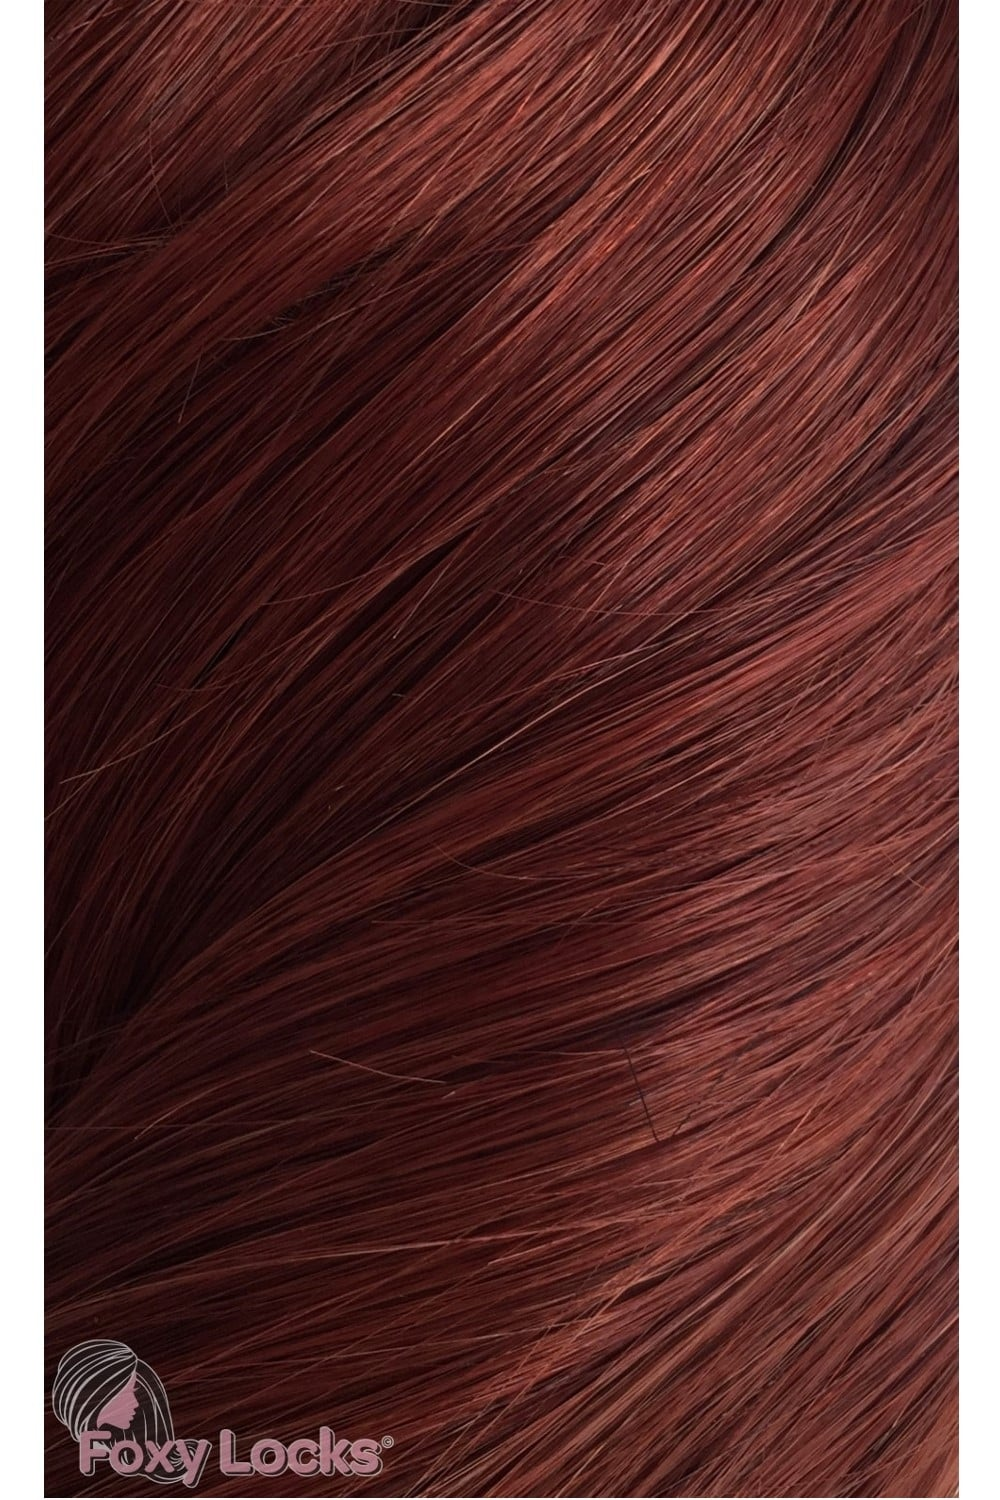 782b2662d807 Mahogany Red  33 - Luxurious 24